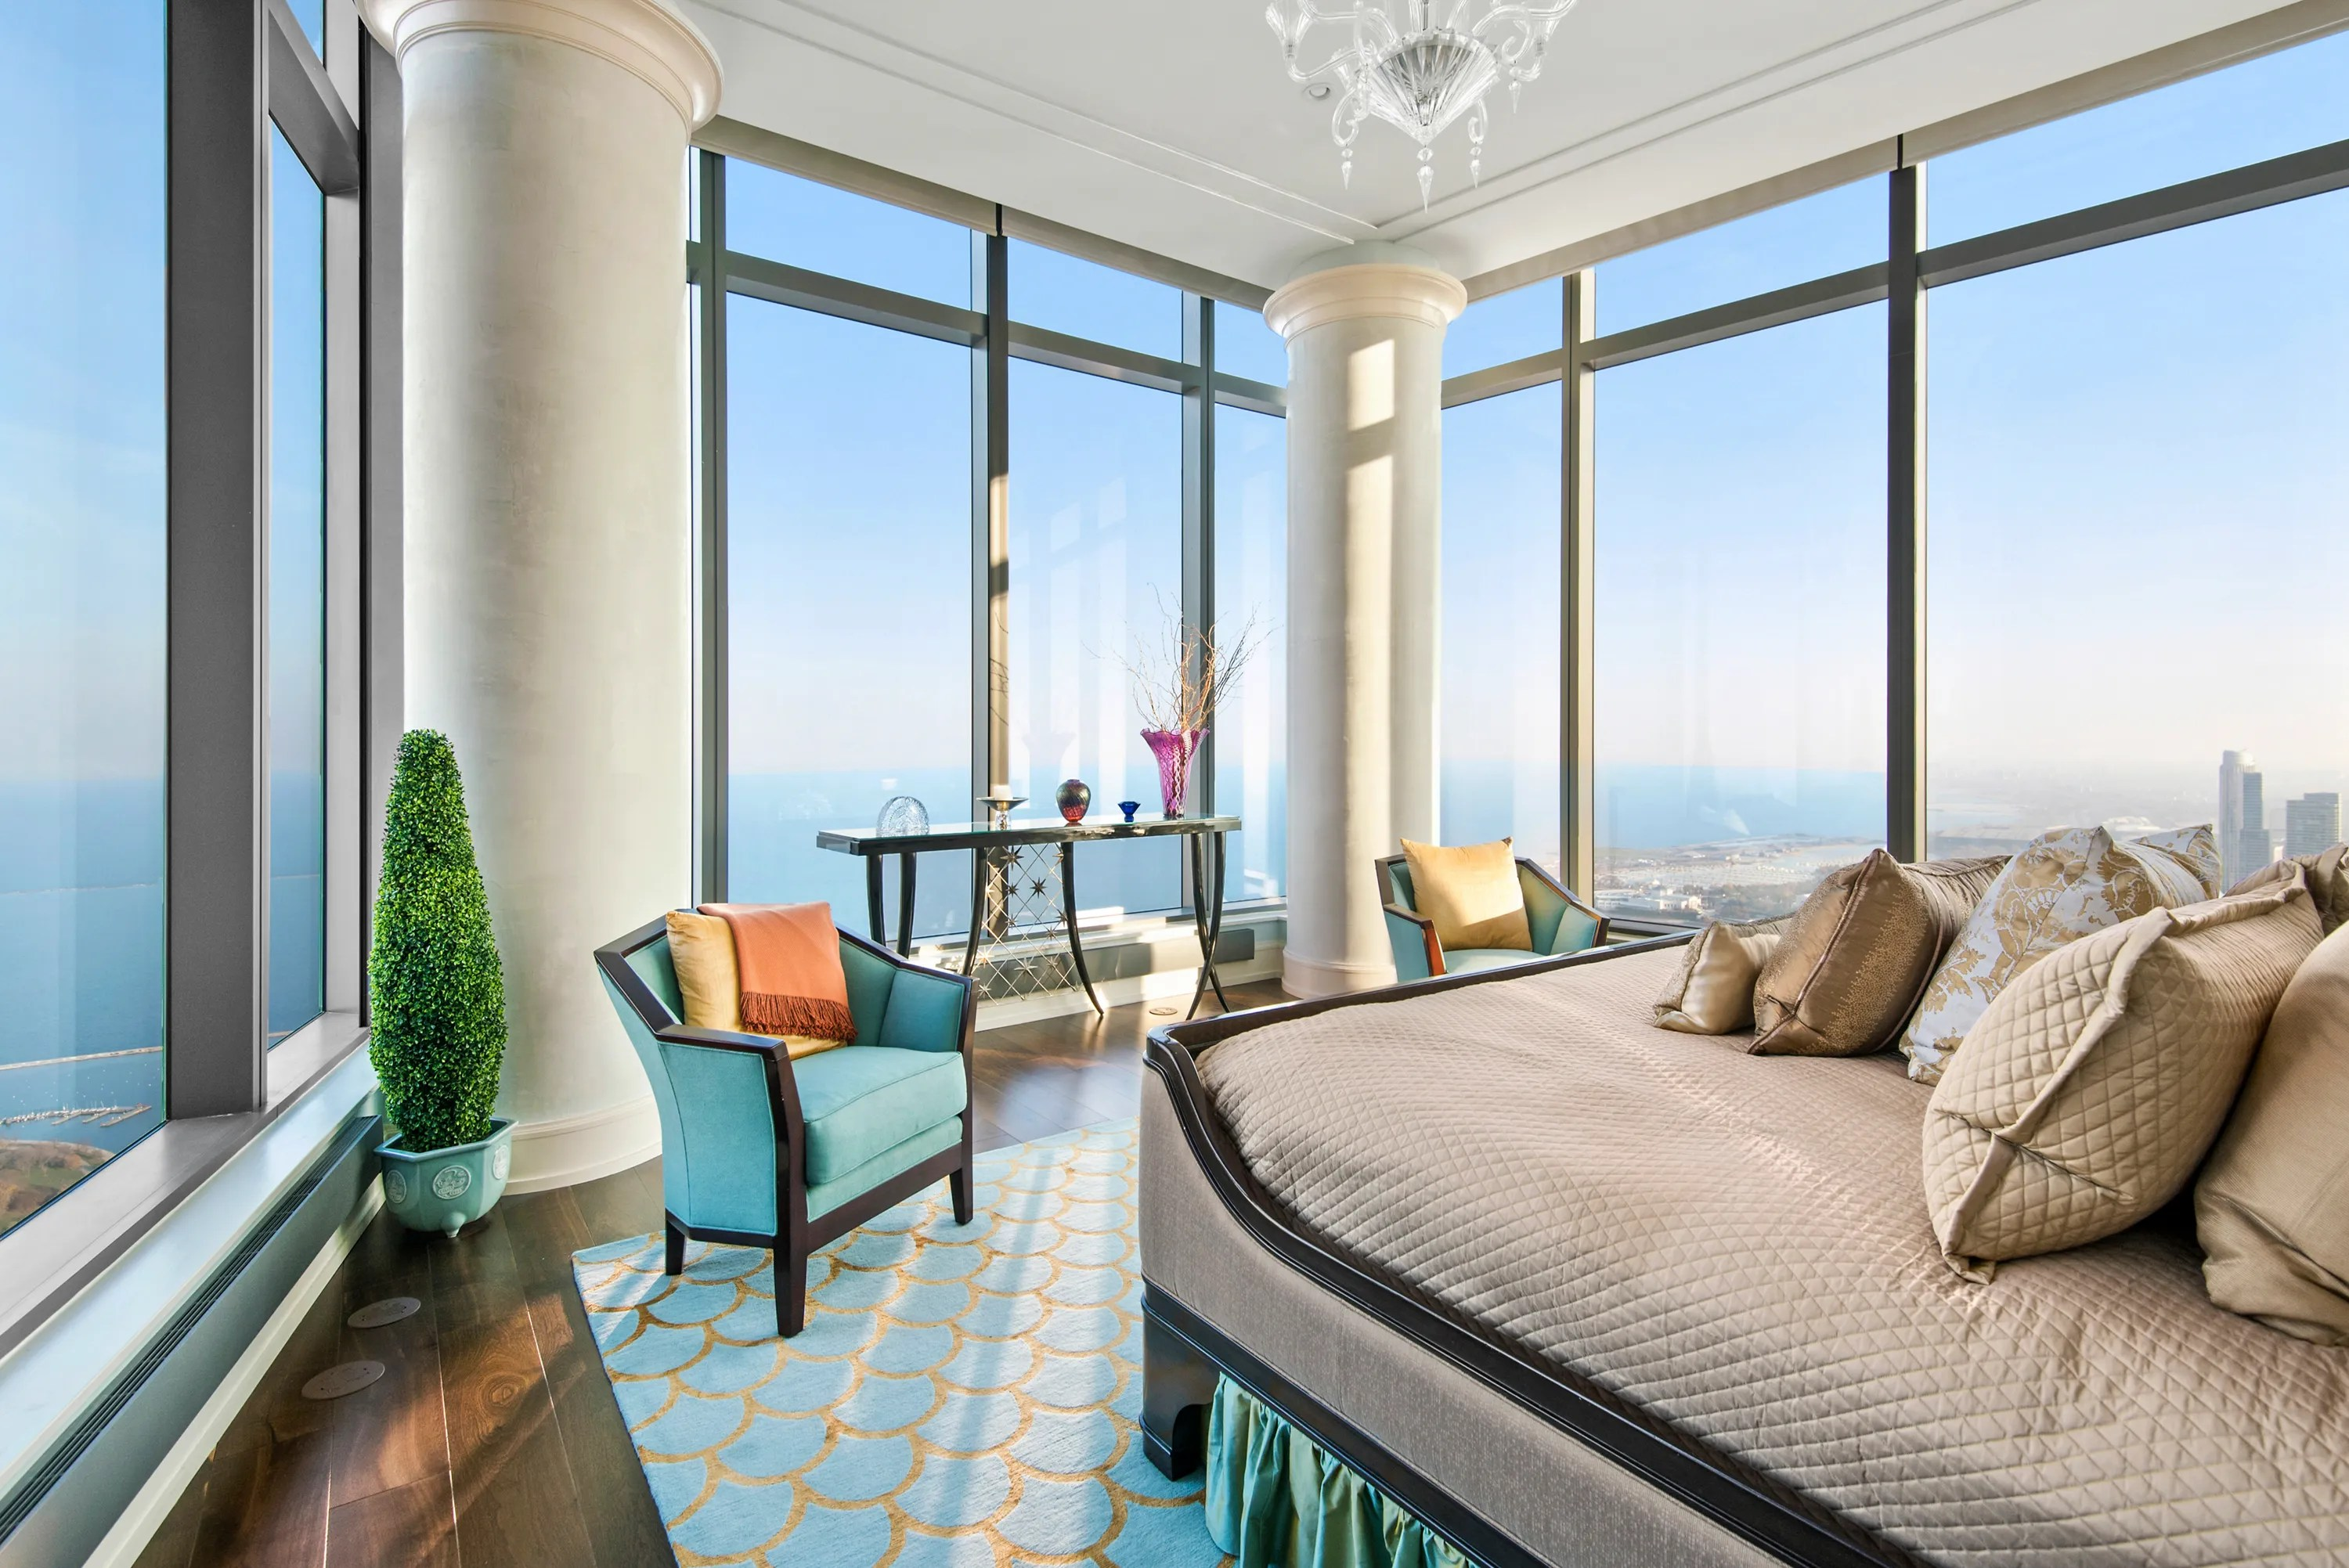 72 Floors Up This 625 Million Penthouse Apartment Offers Stellar Views of Chicago Photos